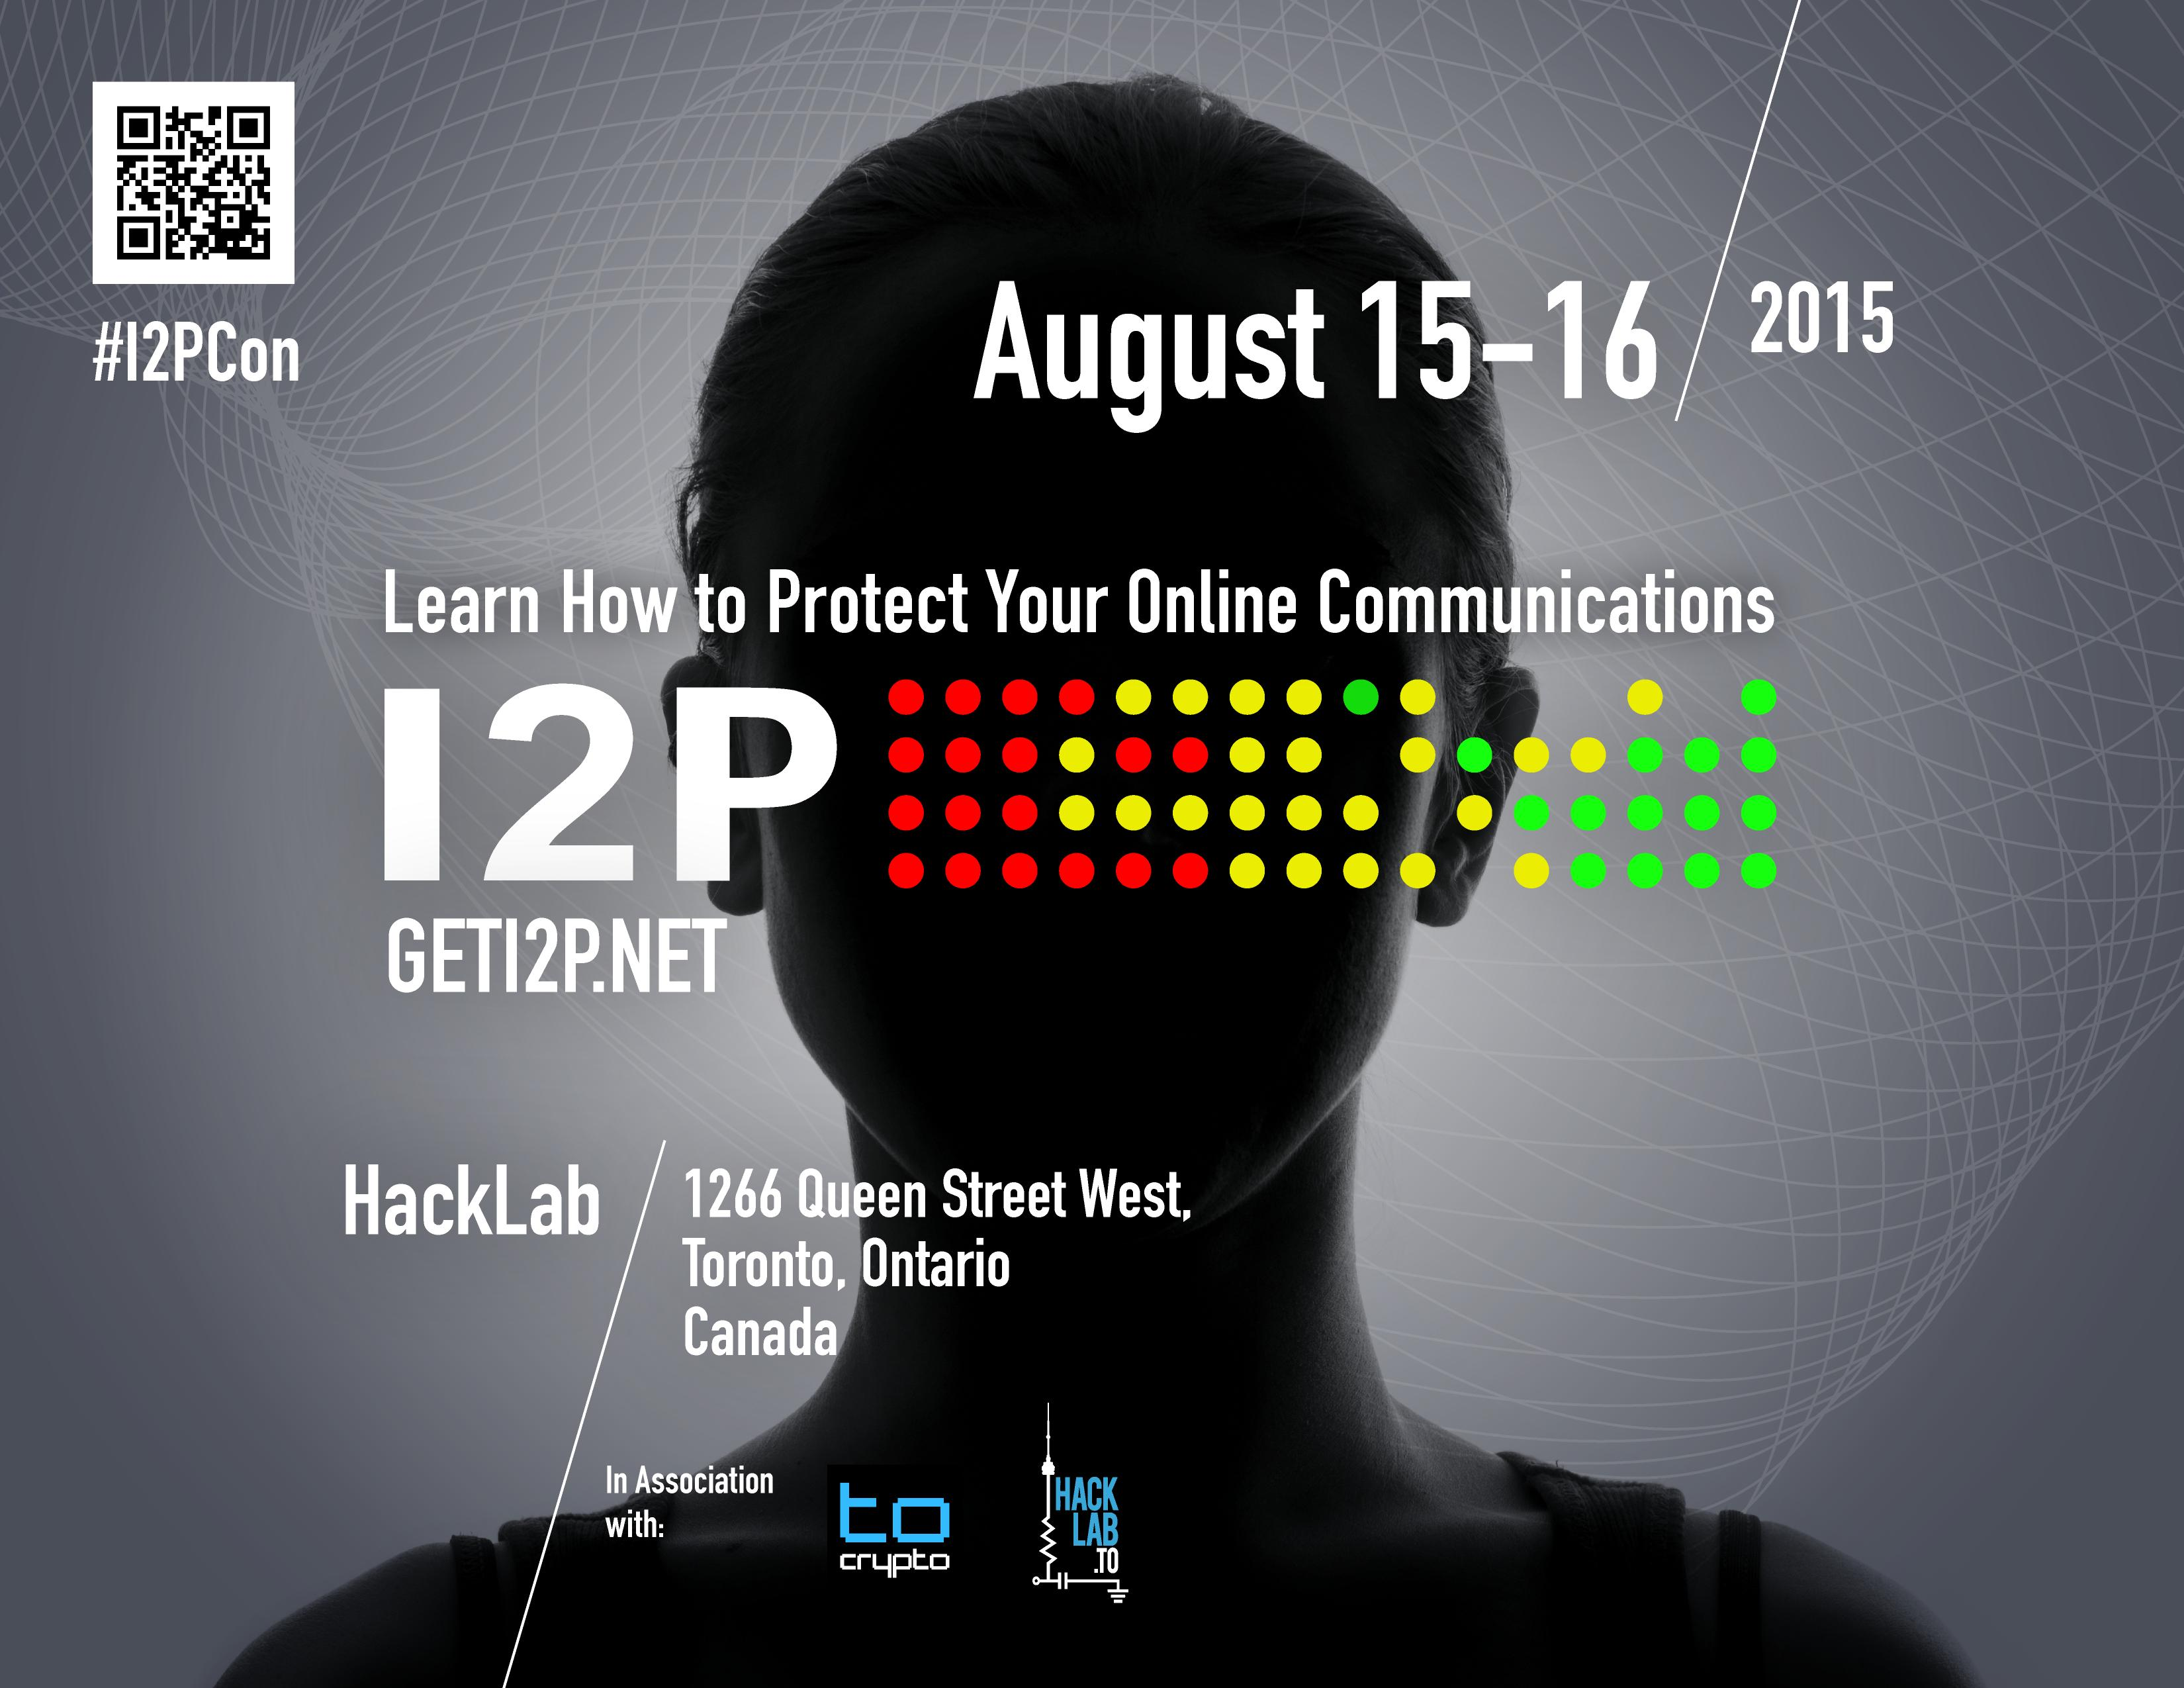 I2P Conference at Hacklab – August 15-16 - hacklab to